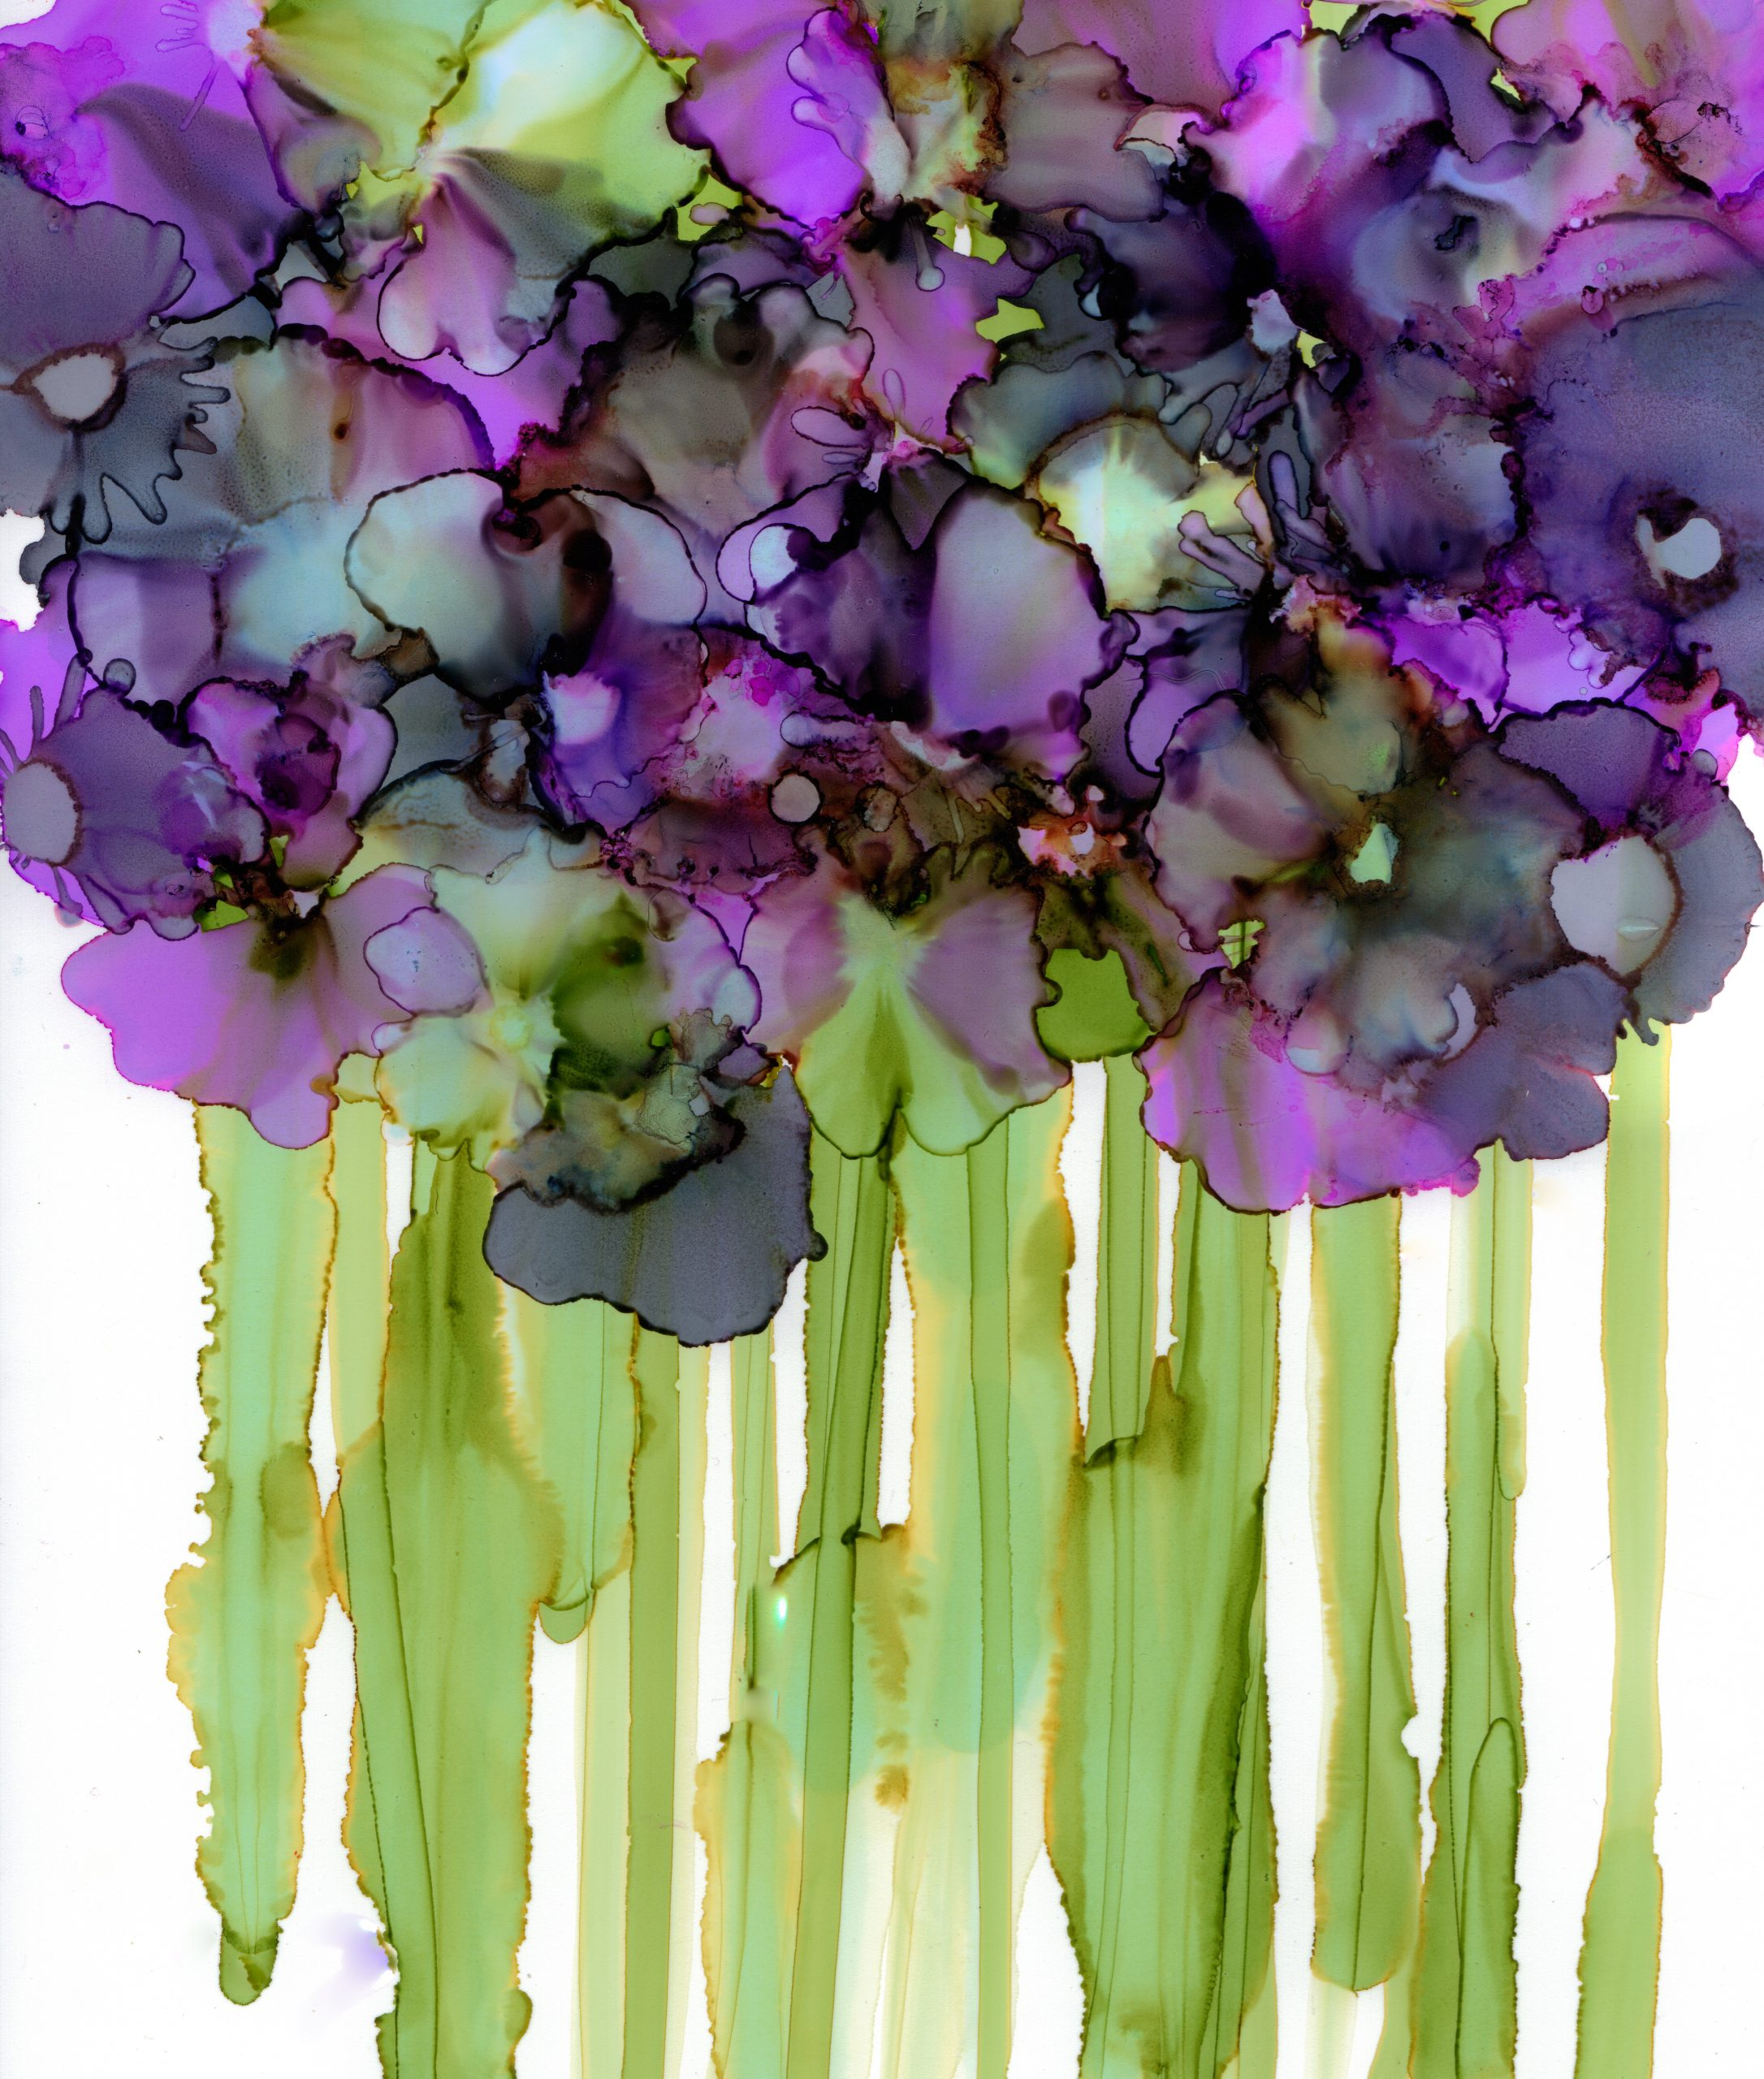 Contemporary Floral Painting in Alcohol Ink by Korinne Carpino